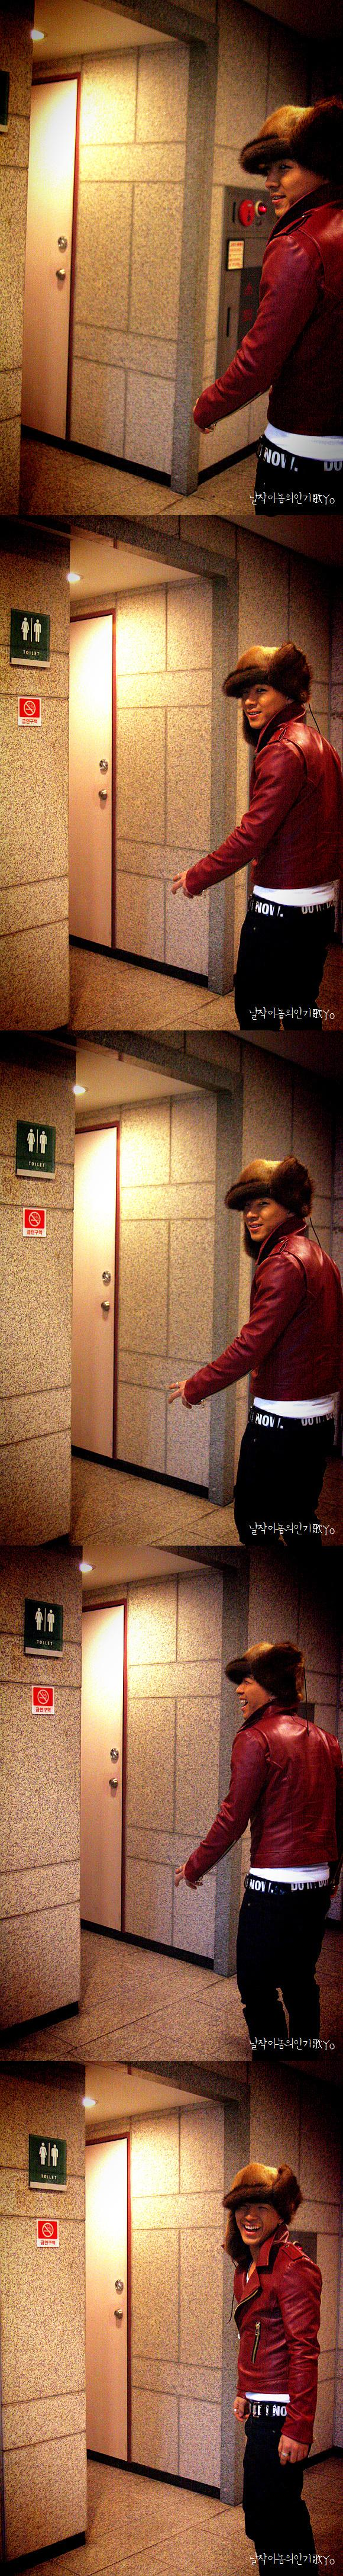 081207 in SBS Inkigayo Backstage 太陽 02